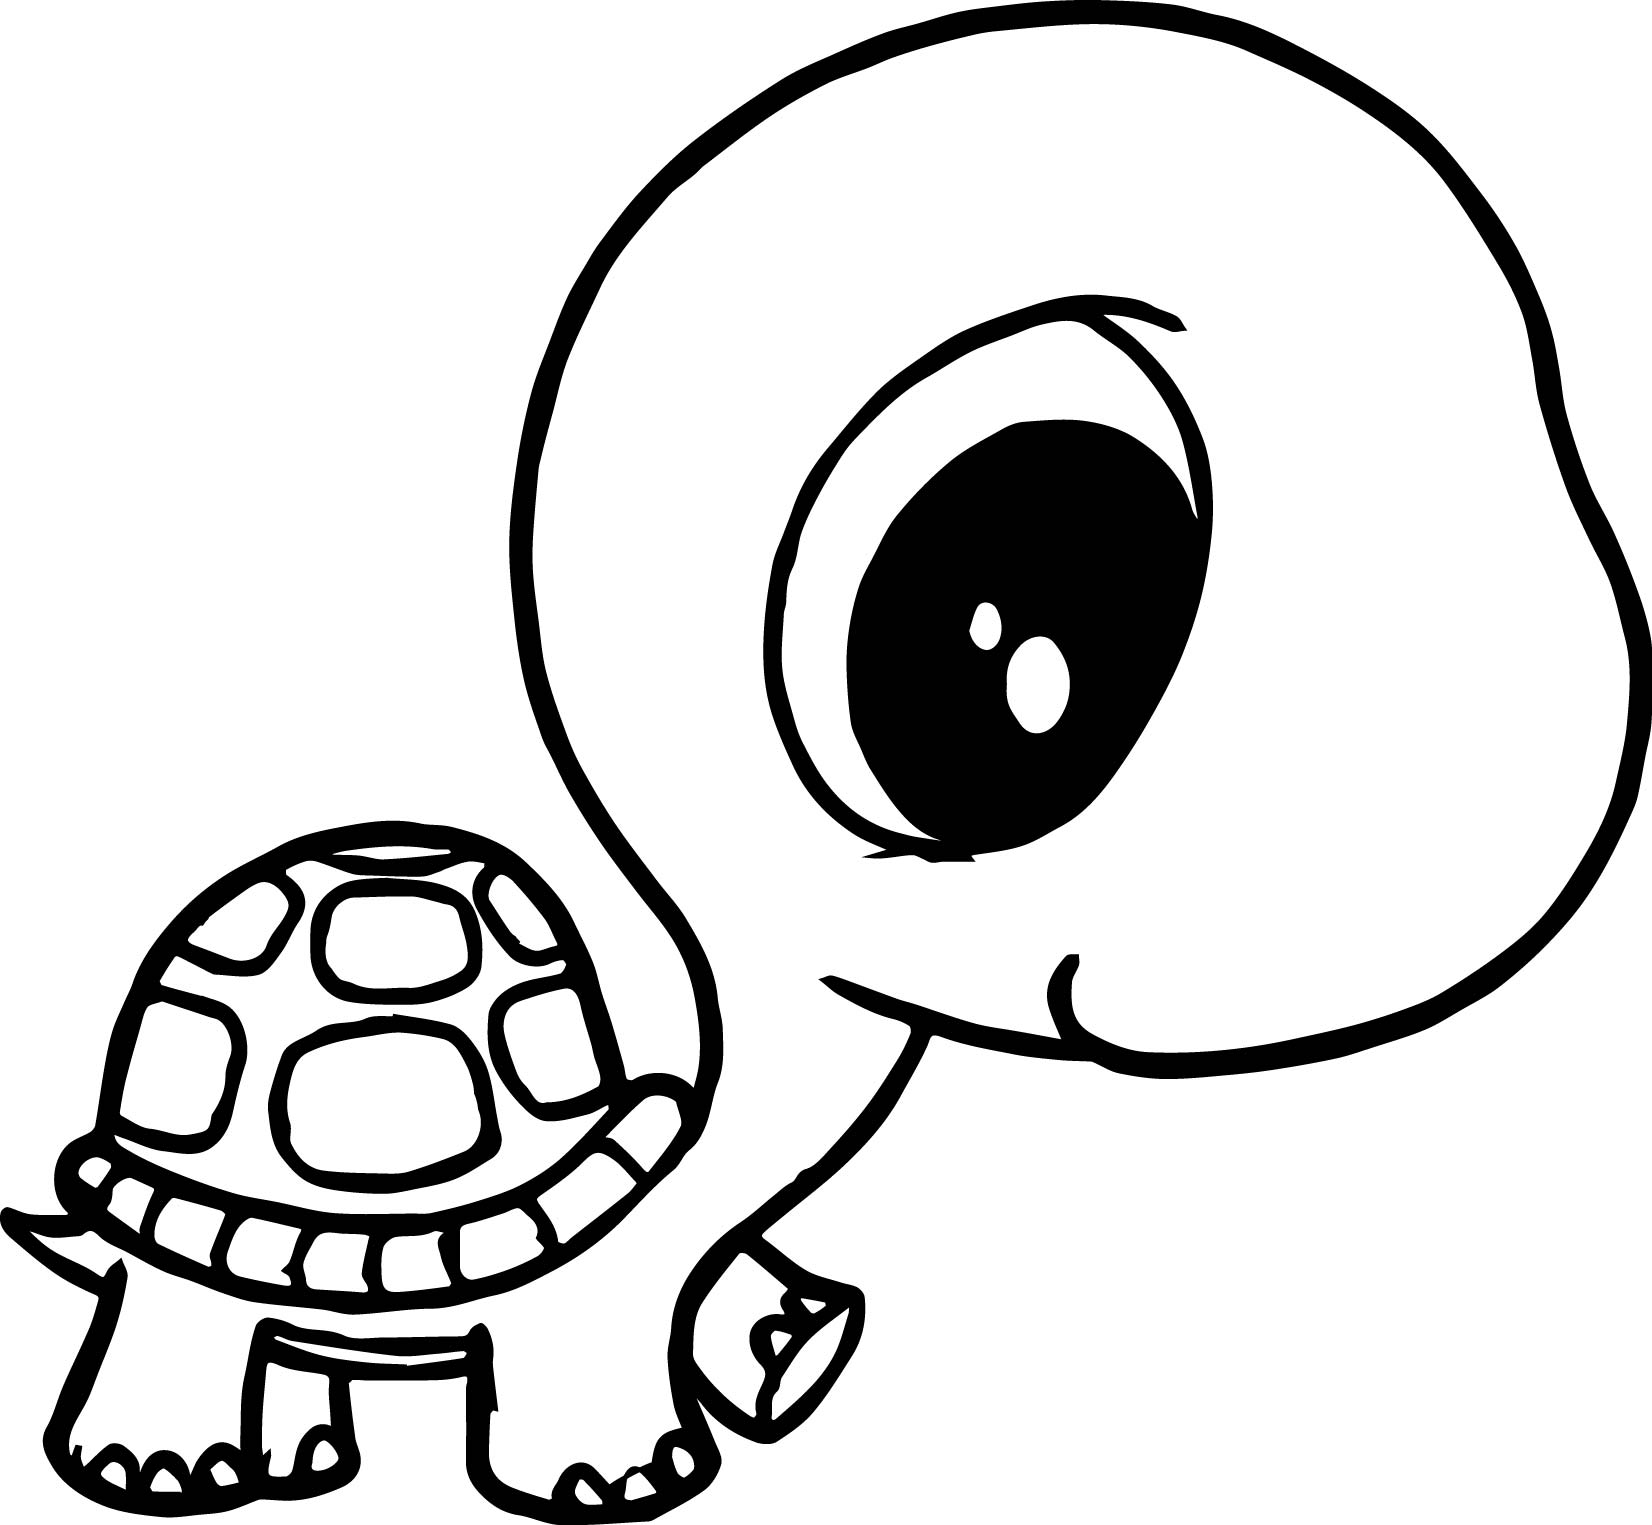 1652x1525 Turtle Coloring Pages Educational Coloring Pages